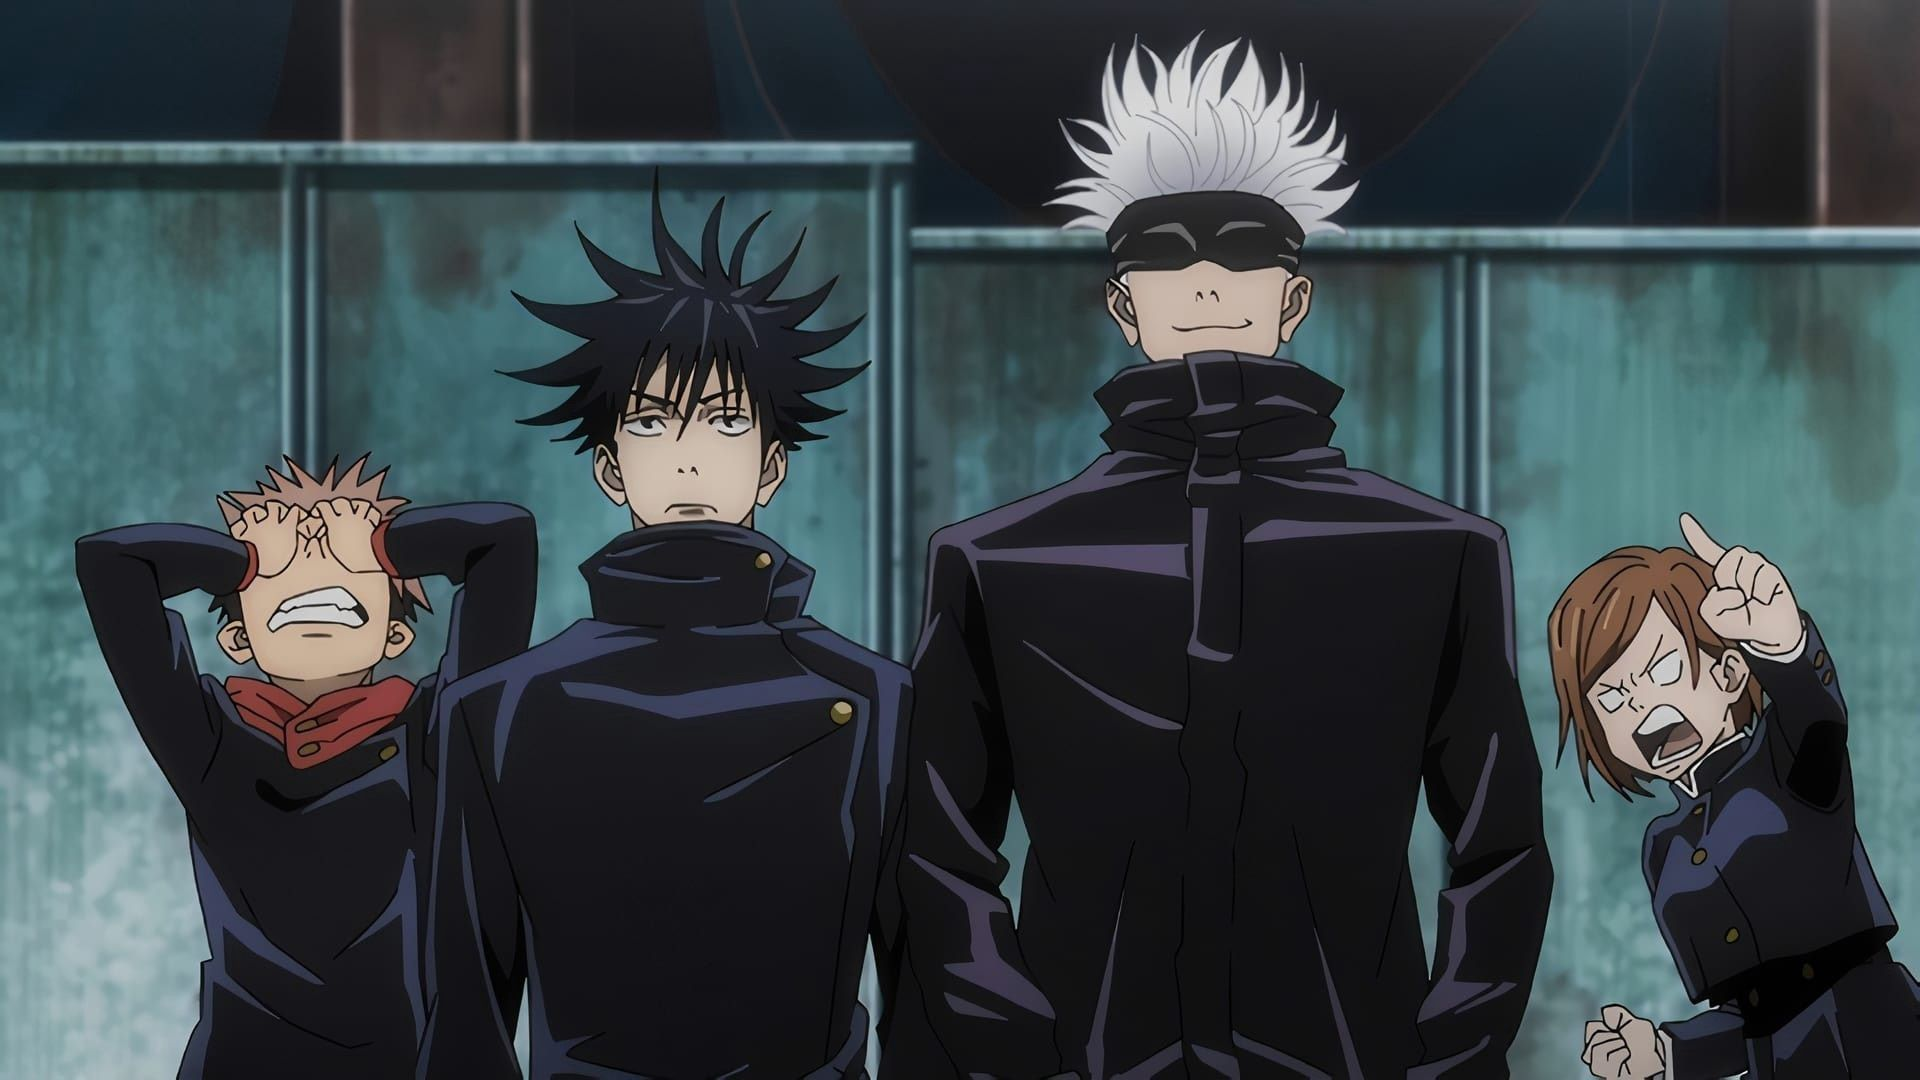 Jujutsu Kaisen Season 2 Part 1 Movies And Their Possible Connections Jioforme